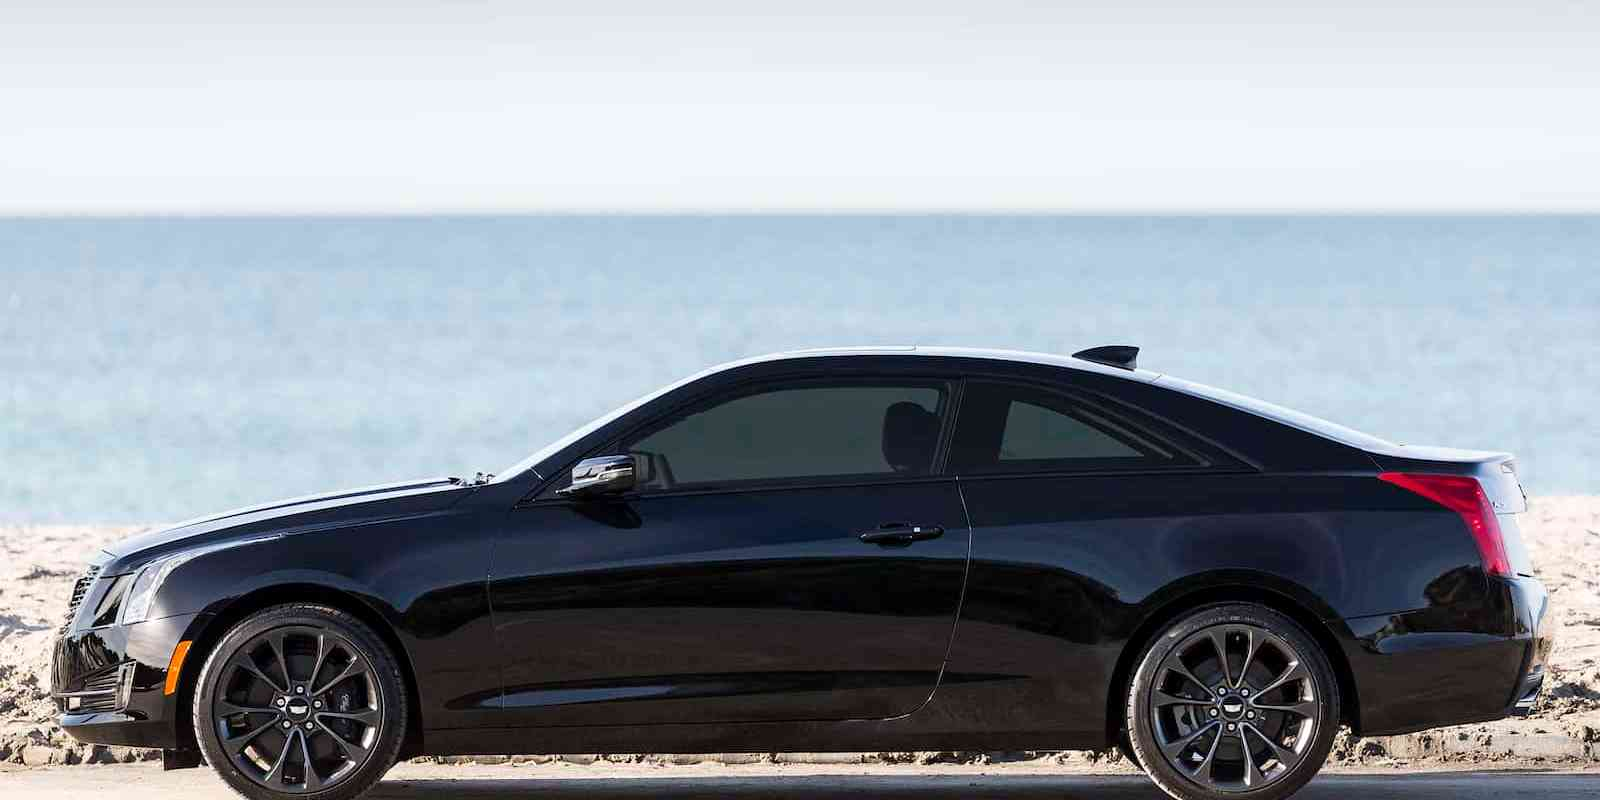 272-HP ATS Coupe Review